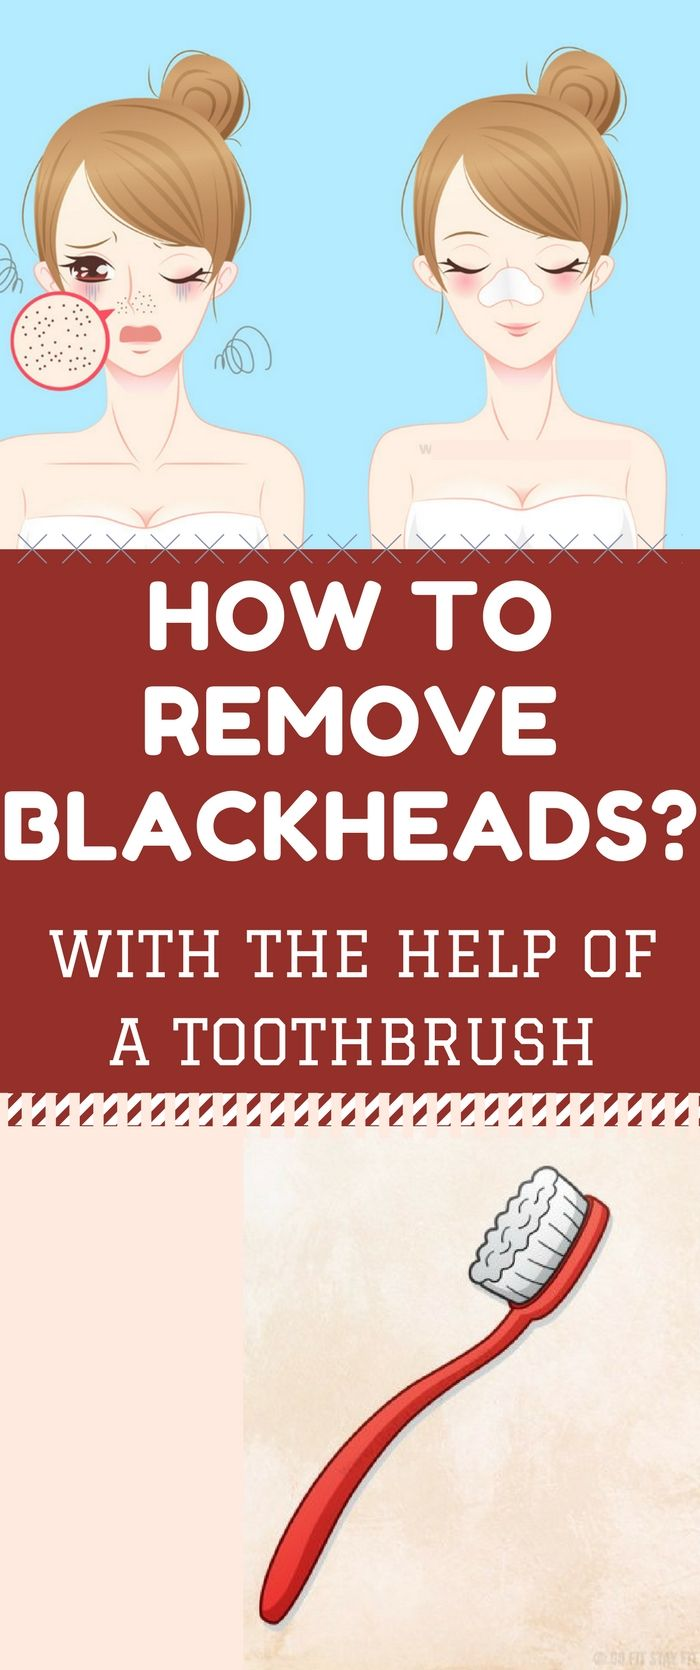 How to Remove Blackheads with the Help of a Toothbrush